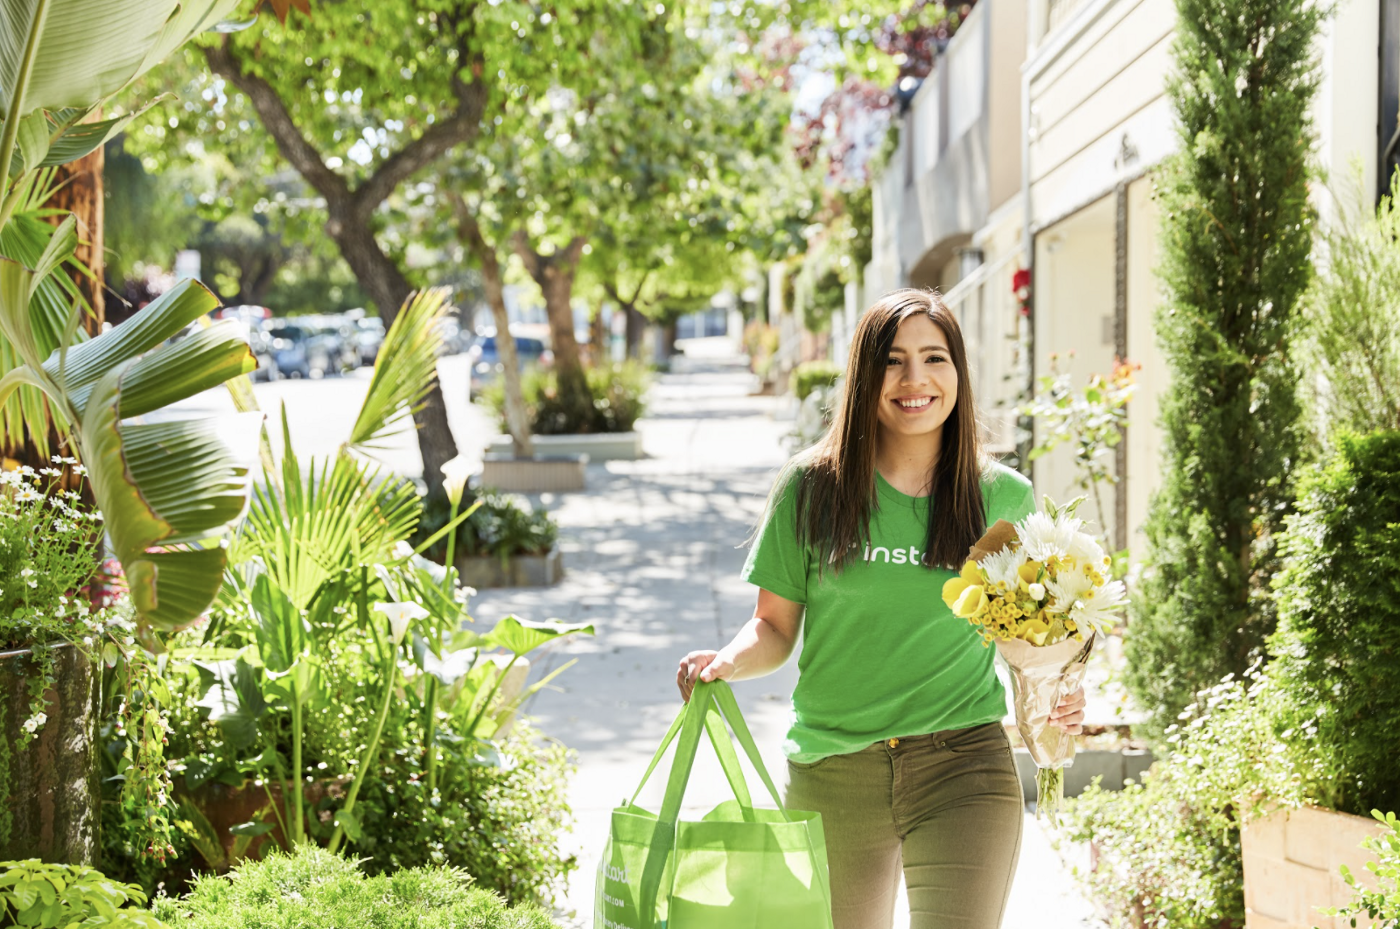 Instacart has raised a $265 million round that now values the company at $39 billion.